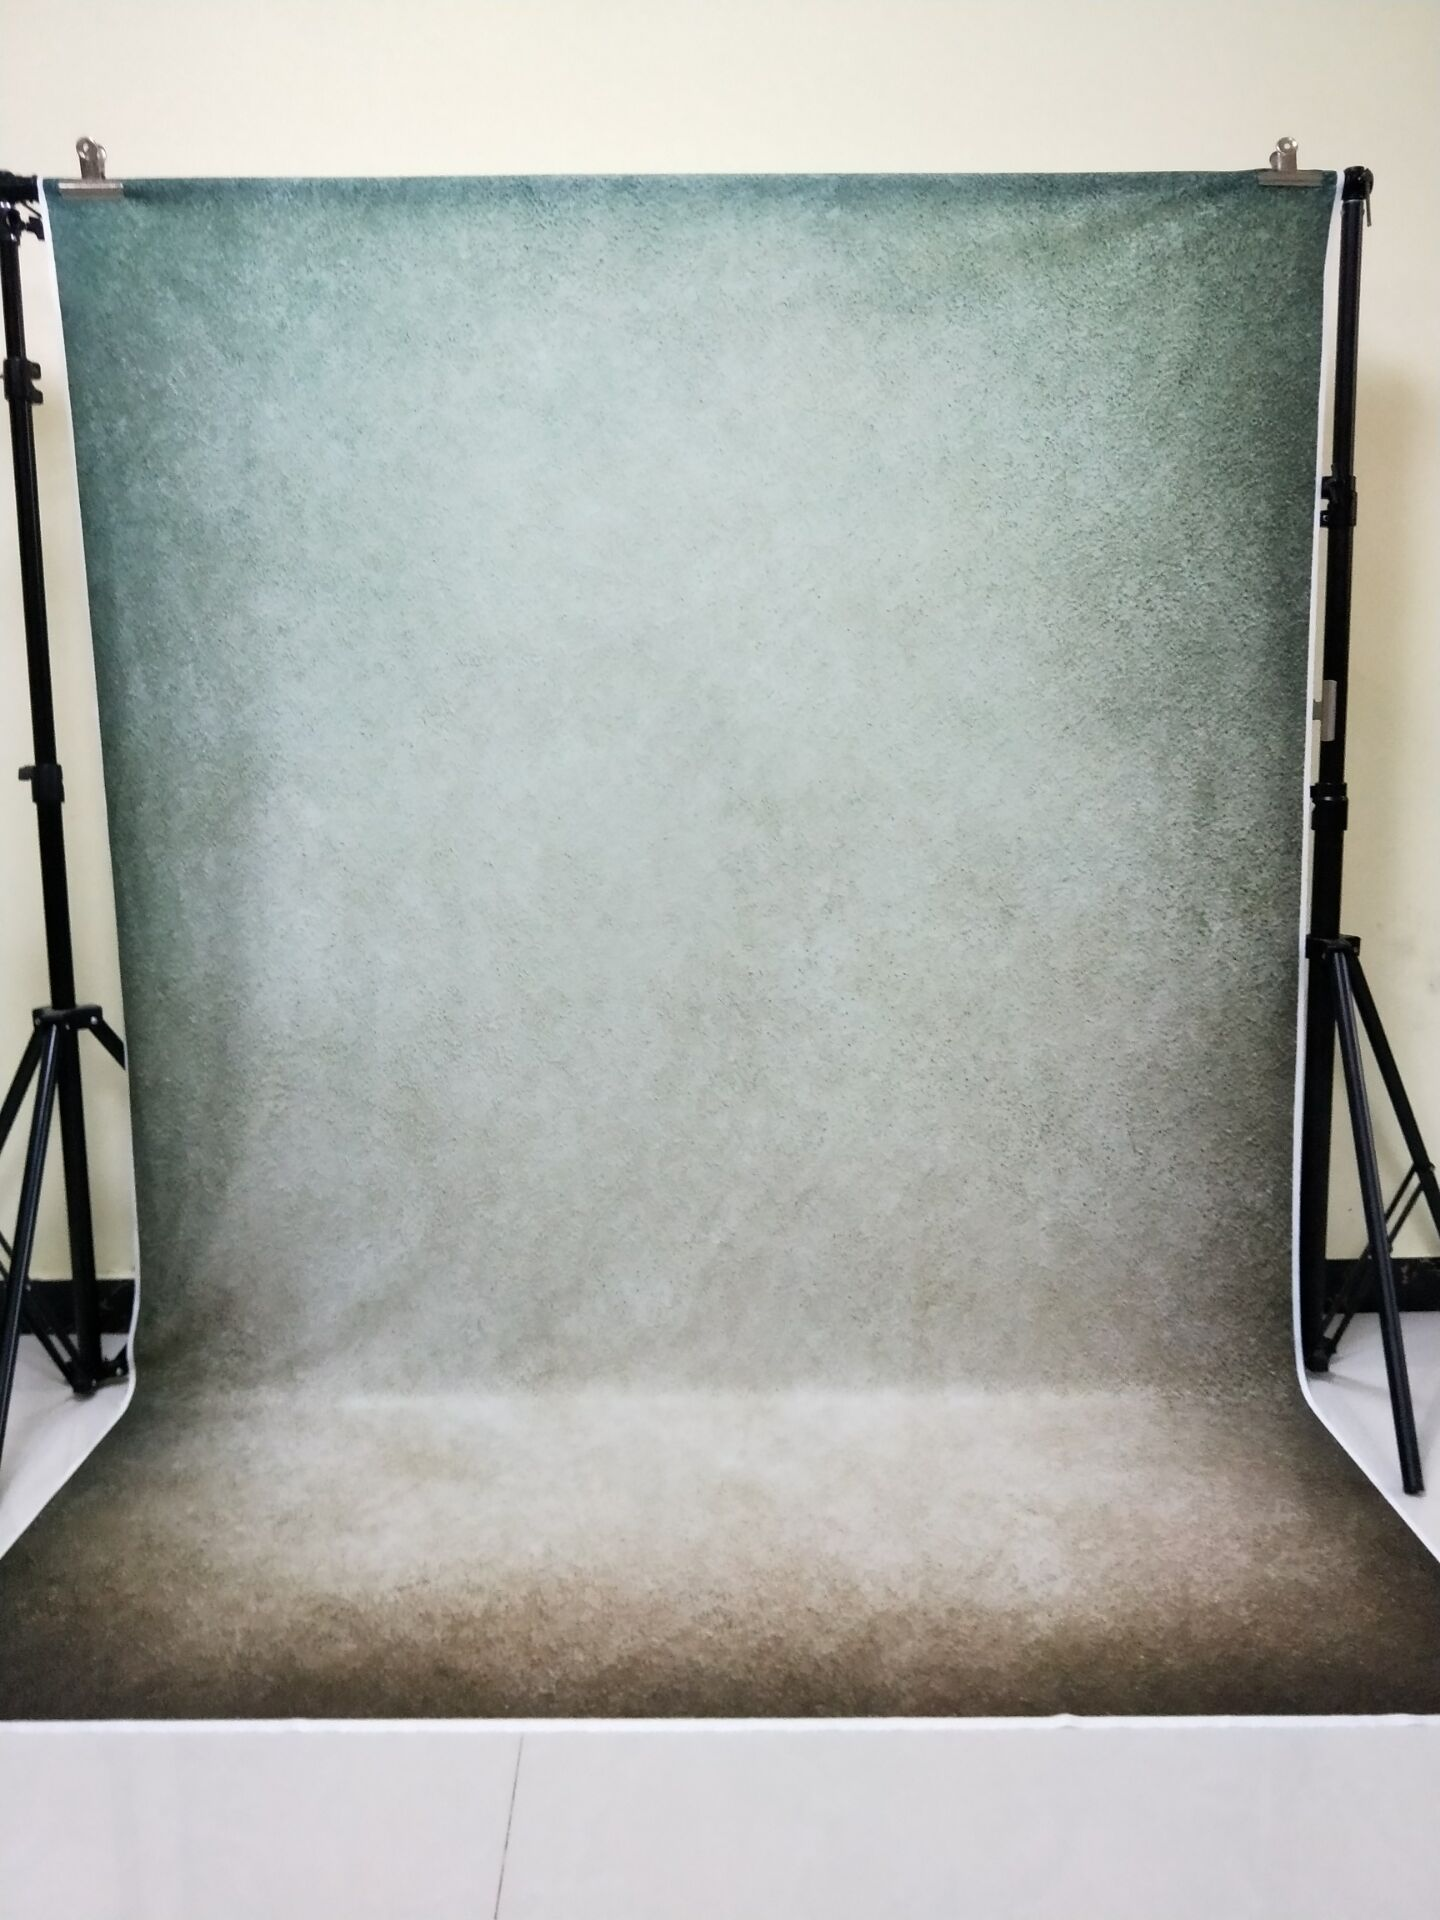 HUAYI 5x7ft Cotton Polyester Solid Photography Backdrop Washable Photo Studios Baby Props Background KP-366 vinyl photo background for baby studio props wooden floor christmas photography backdrops 5x7ft or 3x5ft jiesdx005